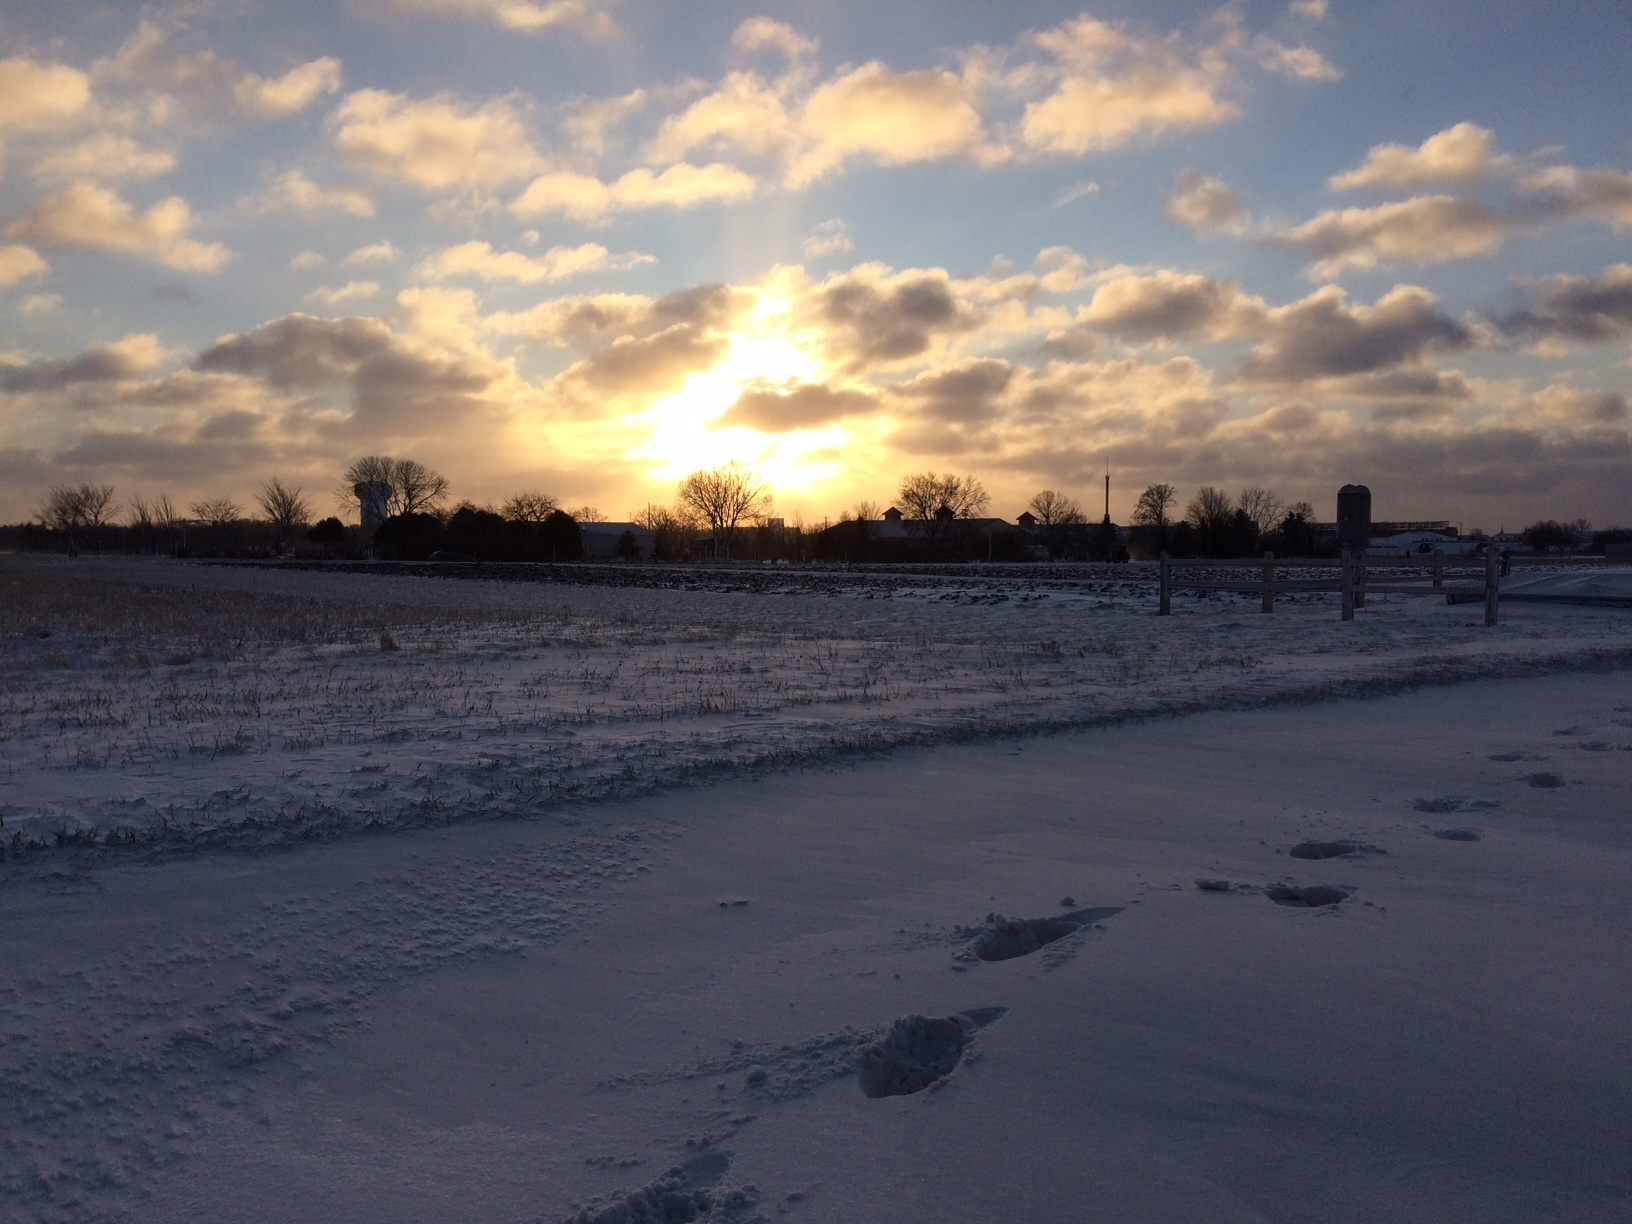 Sunrise over a snow-covered landscape in St. Paul on December 5, 2017